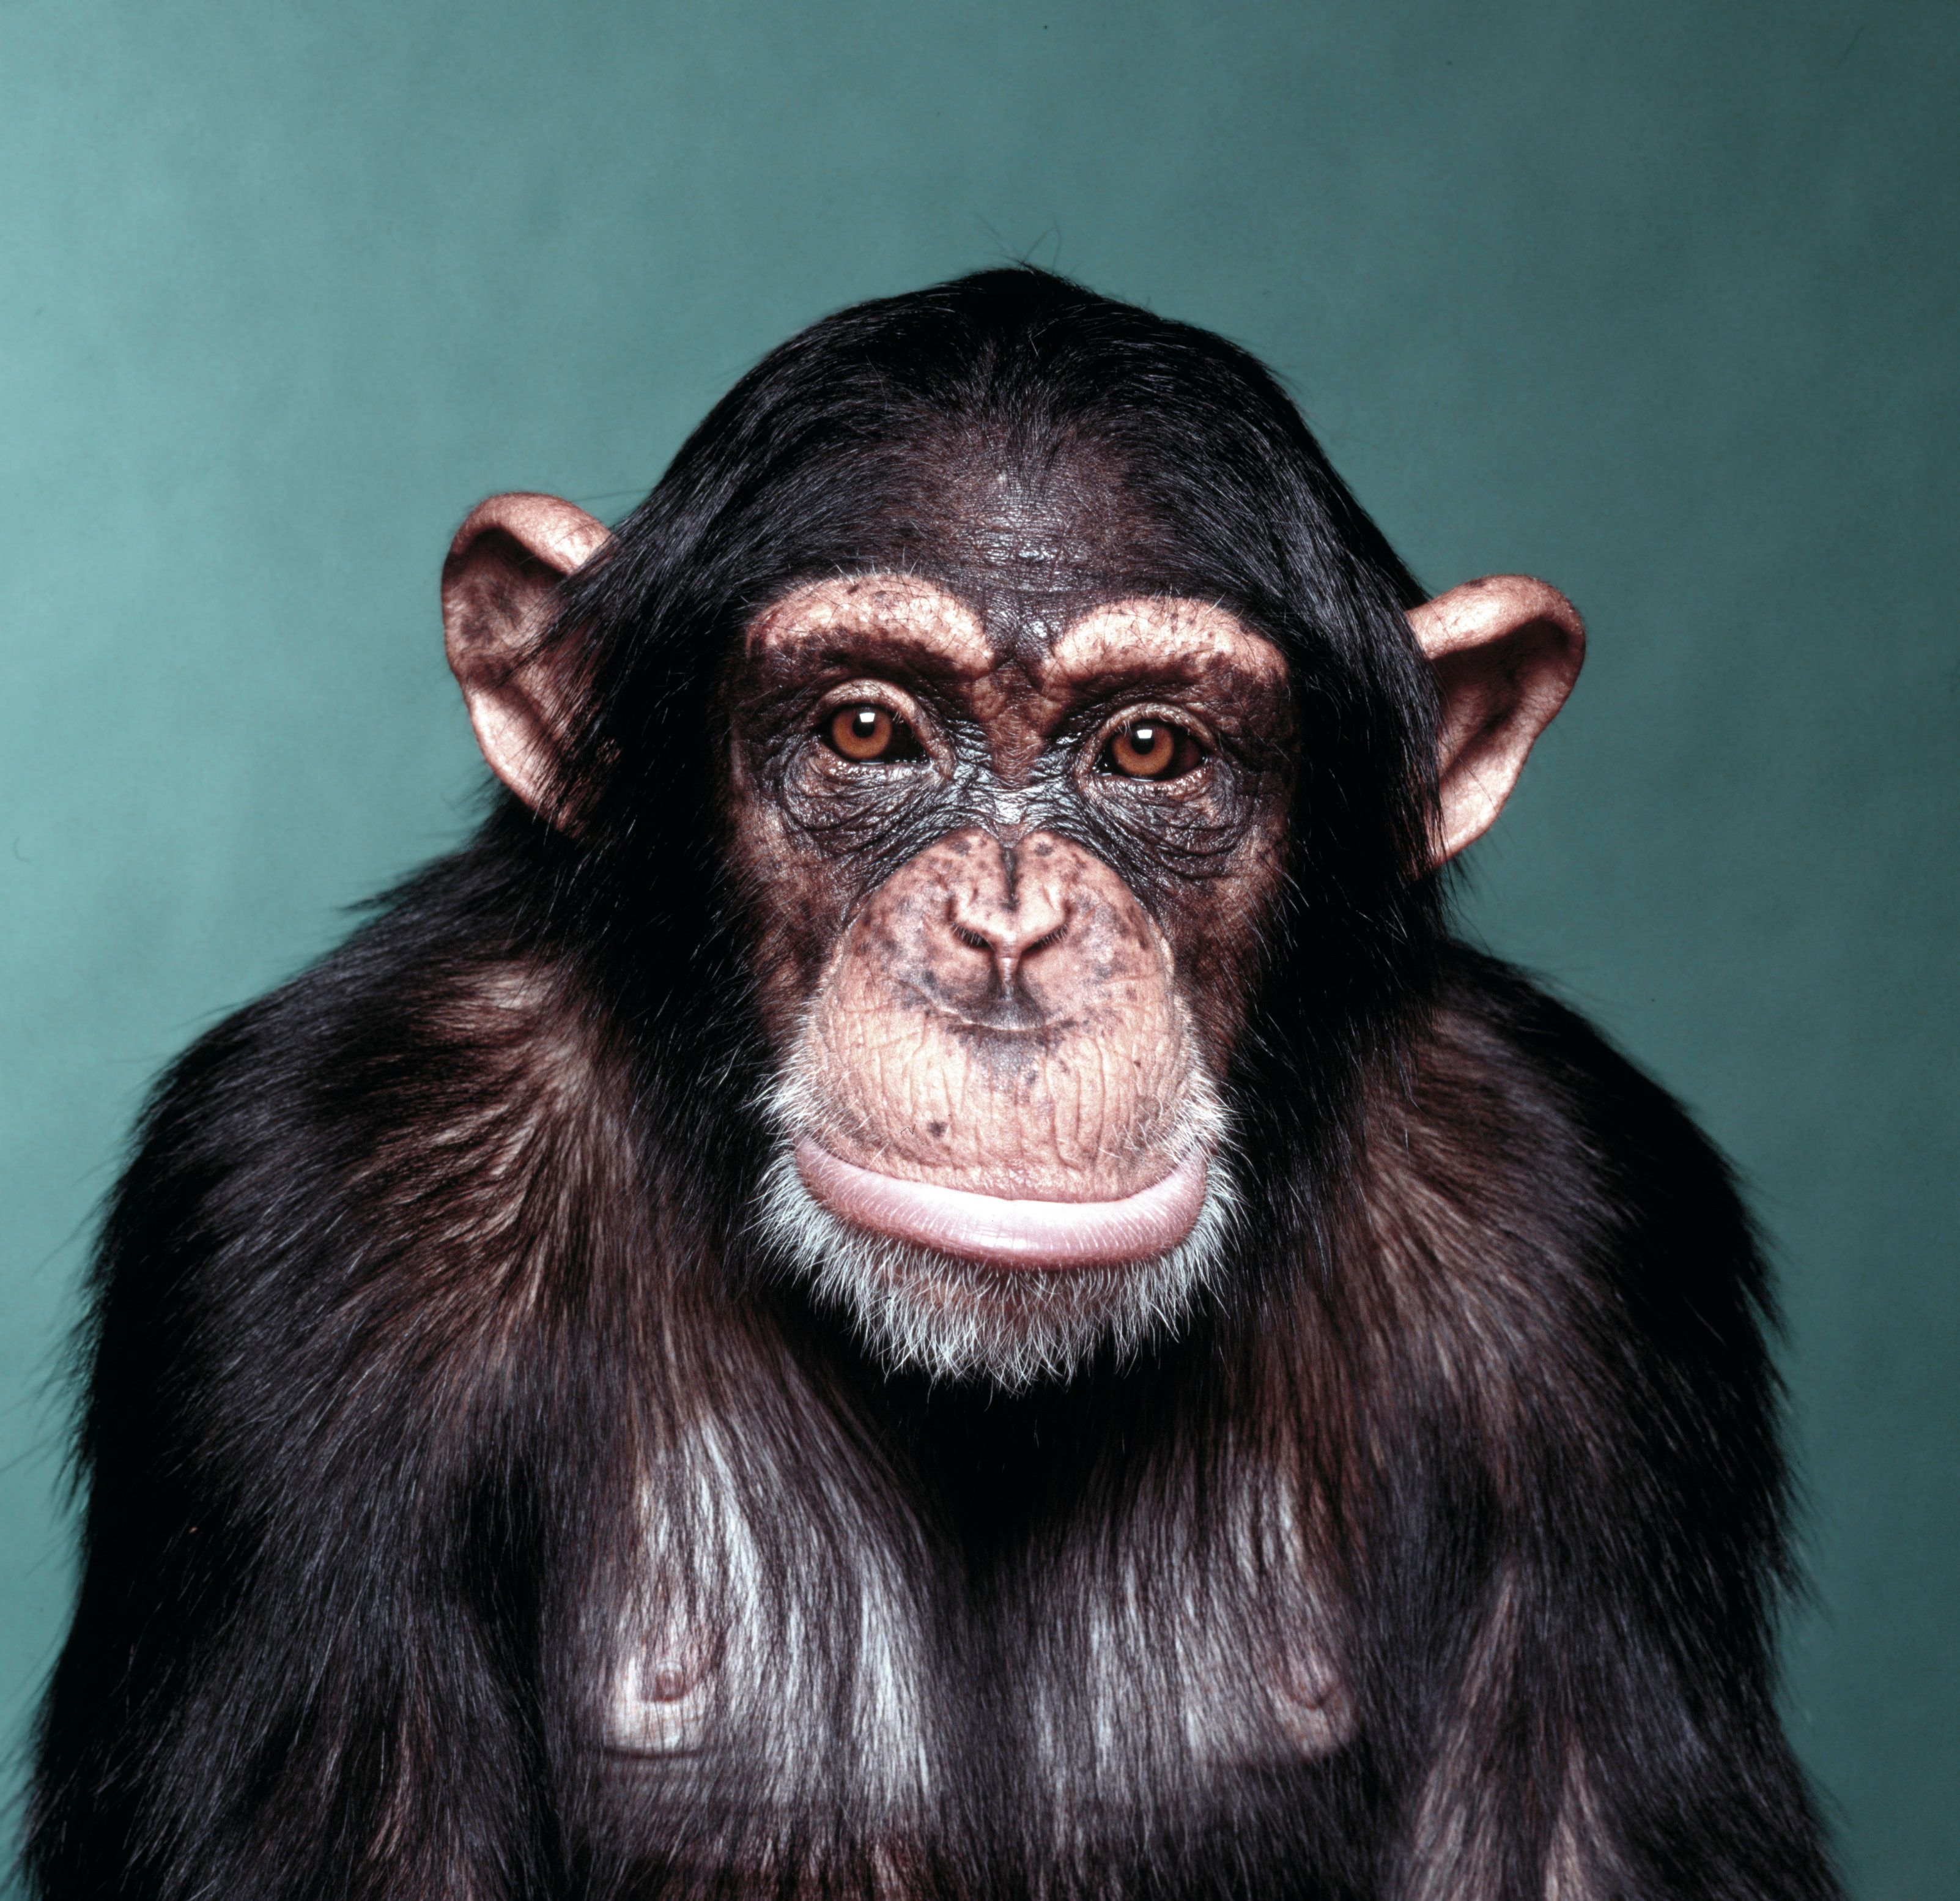 How Often Should You Wash Your Sheets? (Your Bed is Probably Dirtier Than A Chimpanzee's